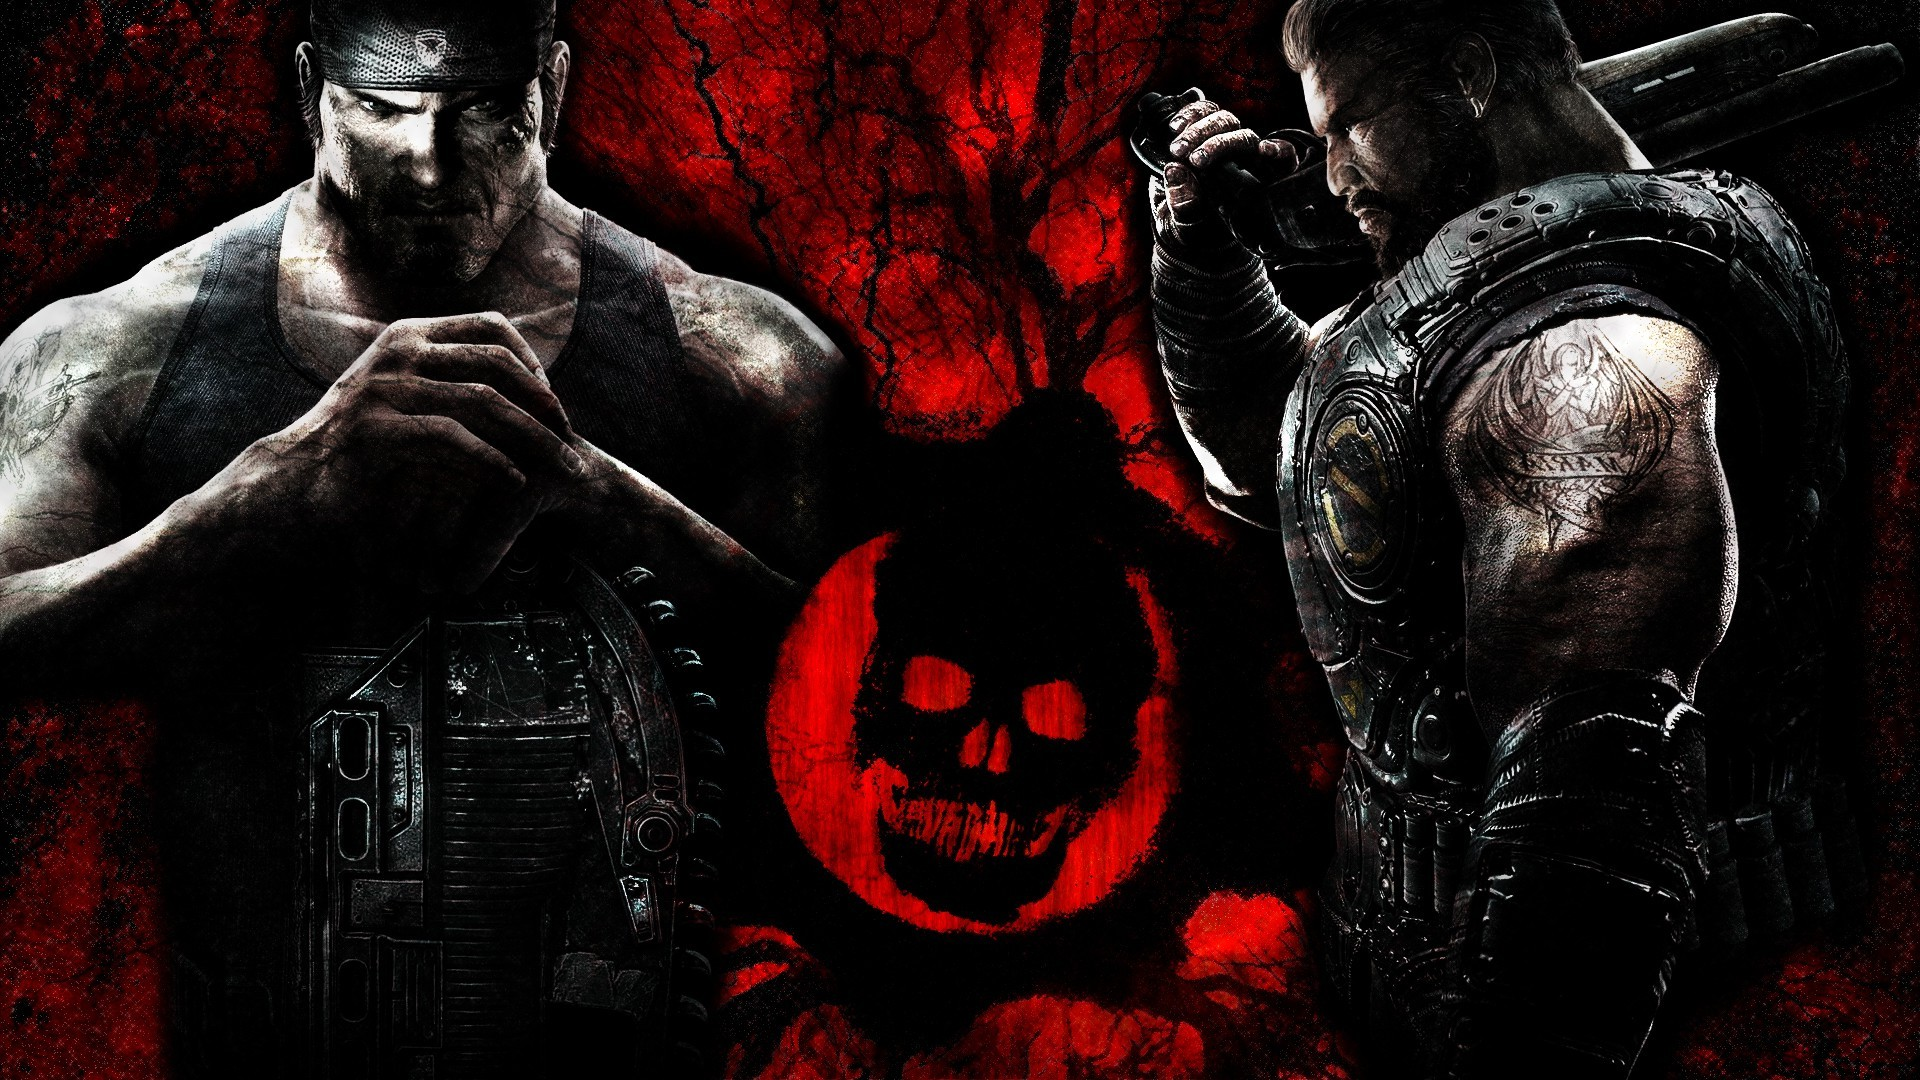 Download 3d Animated Wallpapers For Windows 8 Gears Of War Video Games Wallpapers Hd Desktop And